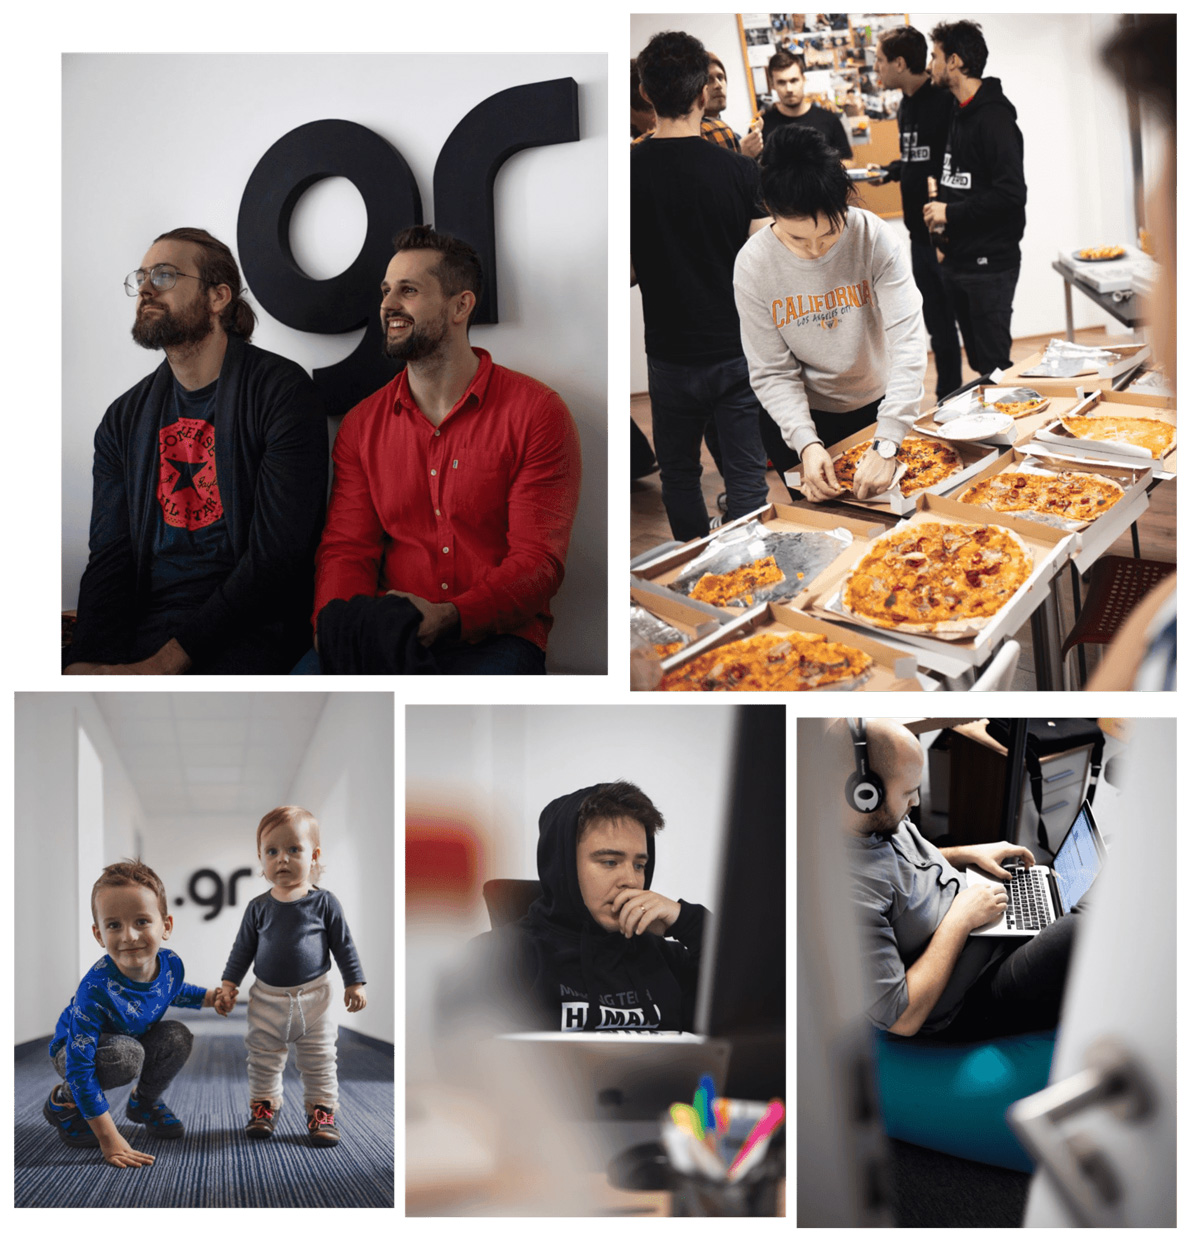 hackathon atmosphere captured by our lens